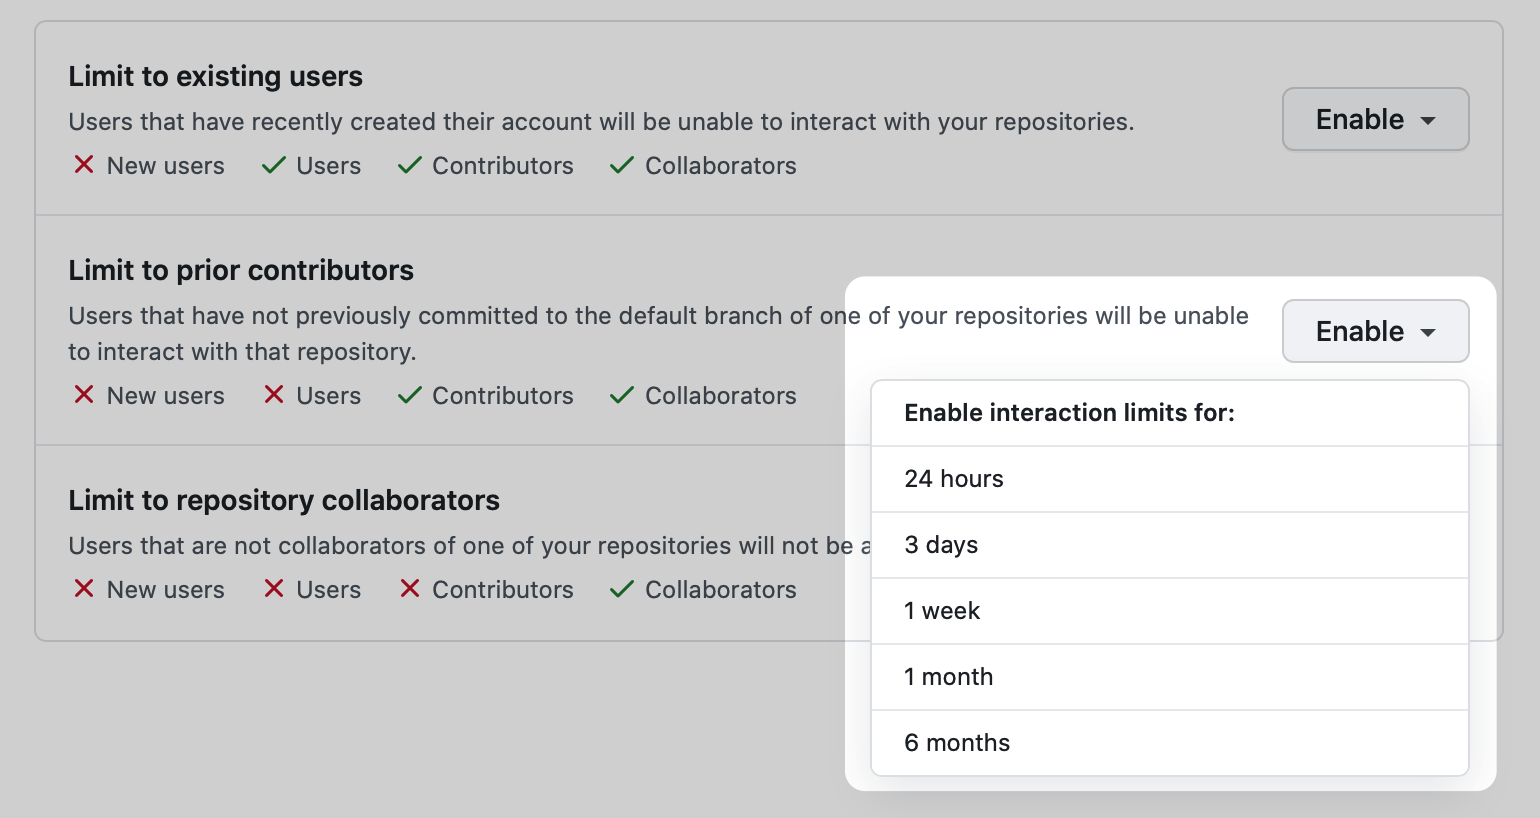 Powerful updates to temporary interaction limits - The GitHub Blog